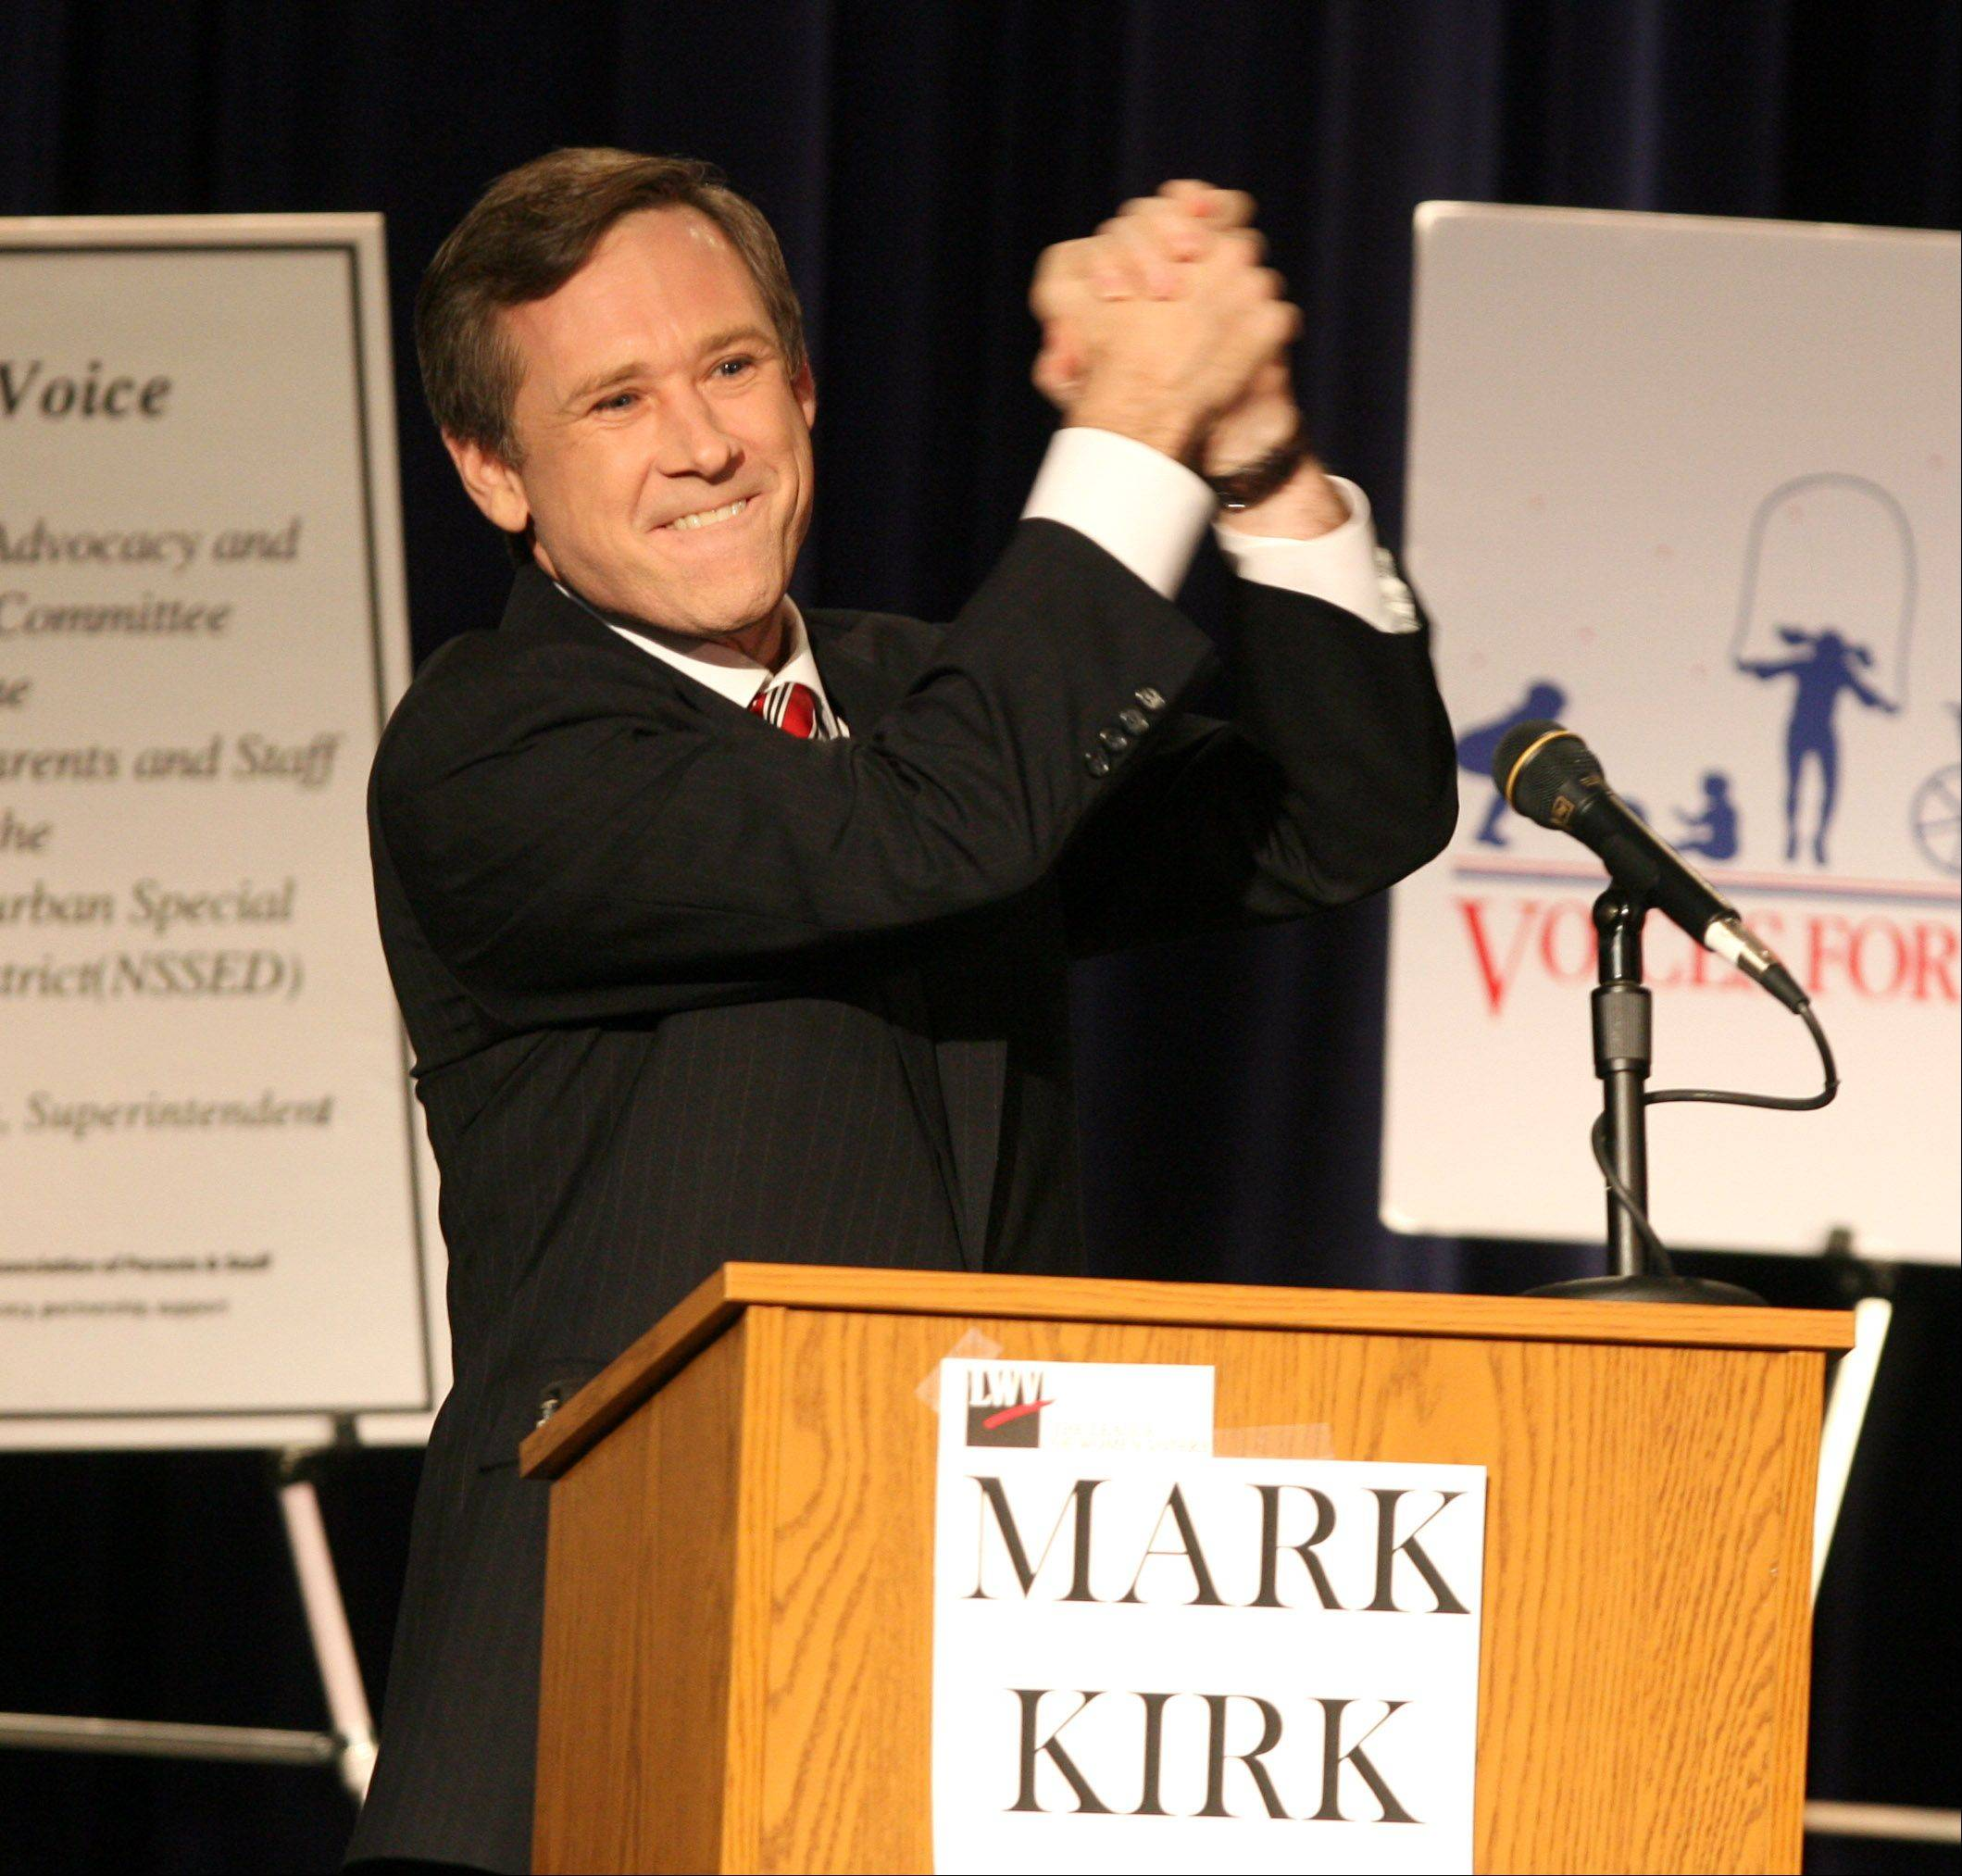 Then-Congressman Mark Kirk acknowledges the crowd at Stevenson High School debate in 2006.